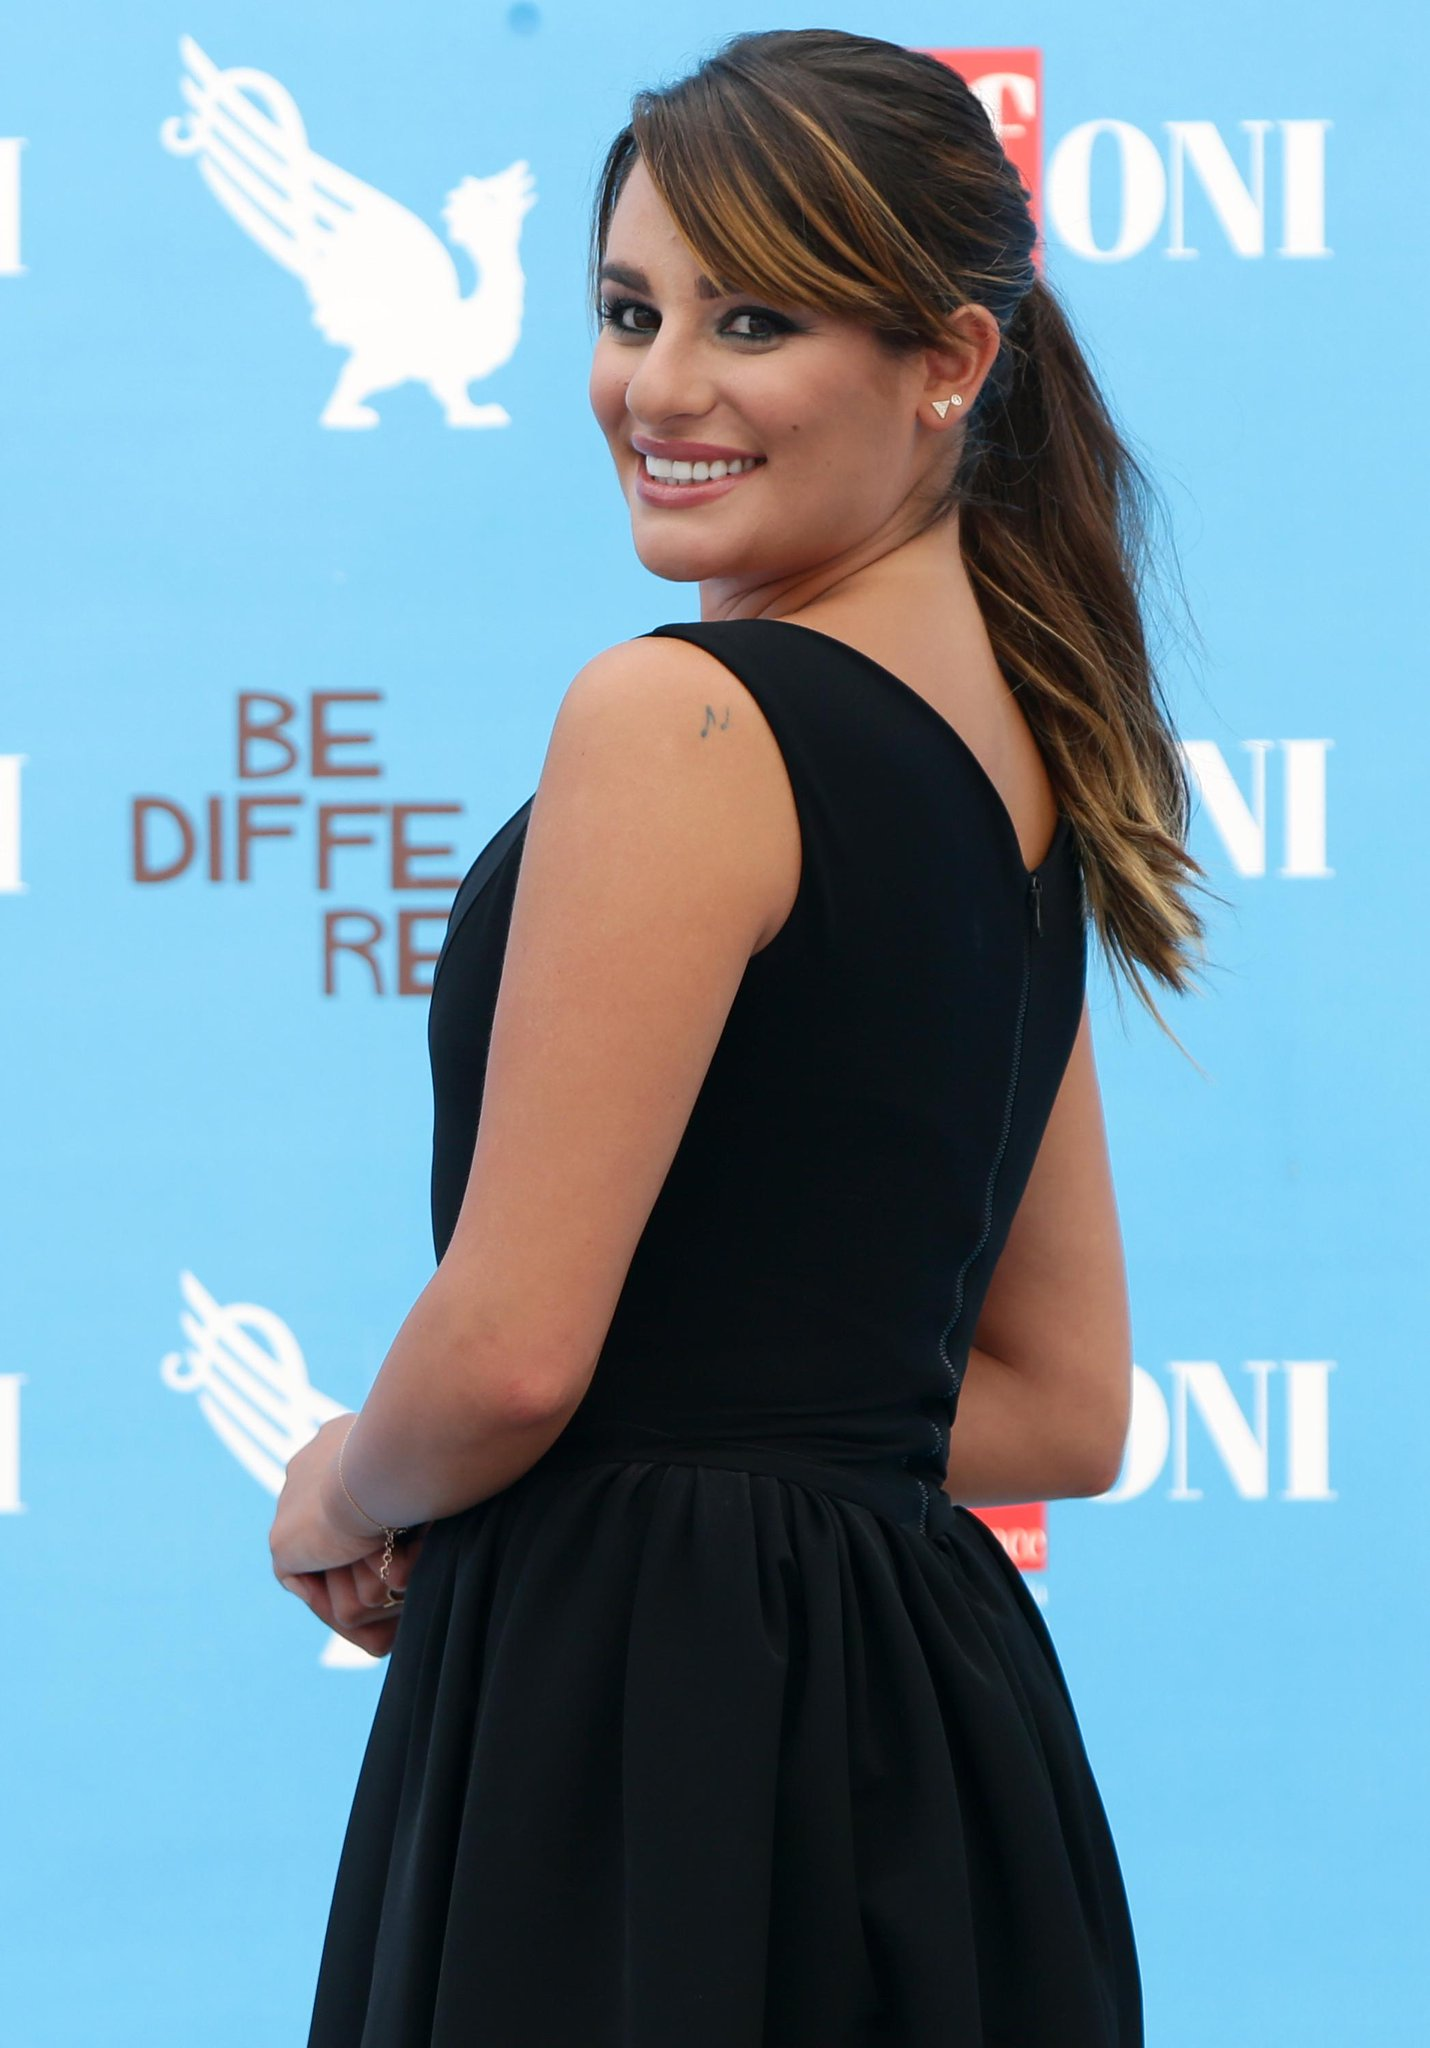 We got the scoop on @MsLeaMichele's surprising new role: http://t.co/5kUj4cPF9M http://t.co/y3A8ZWi4ma